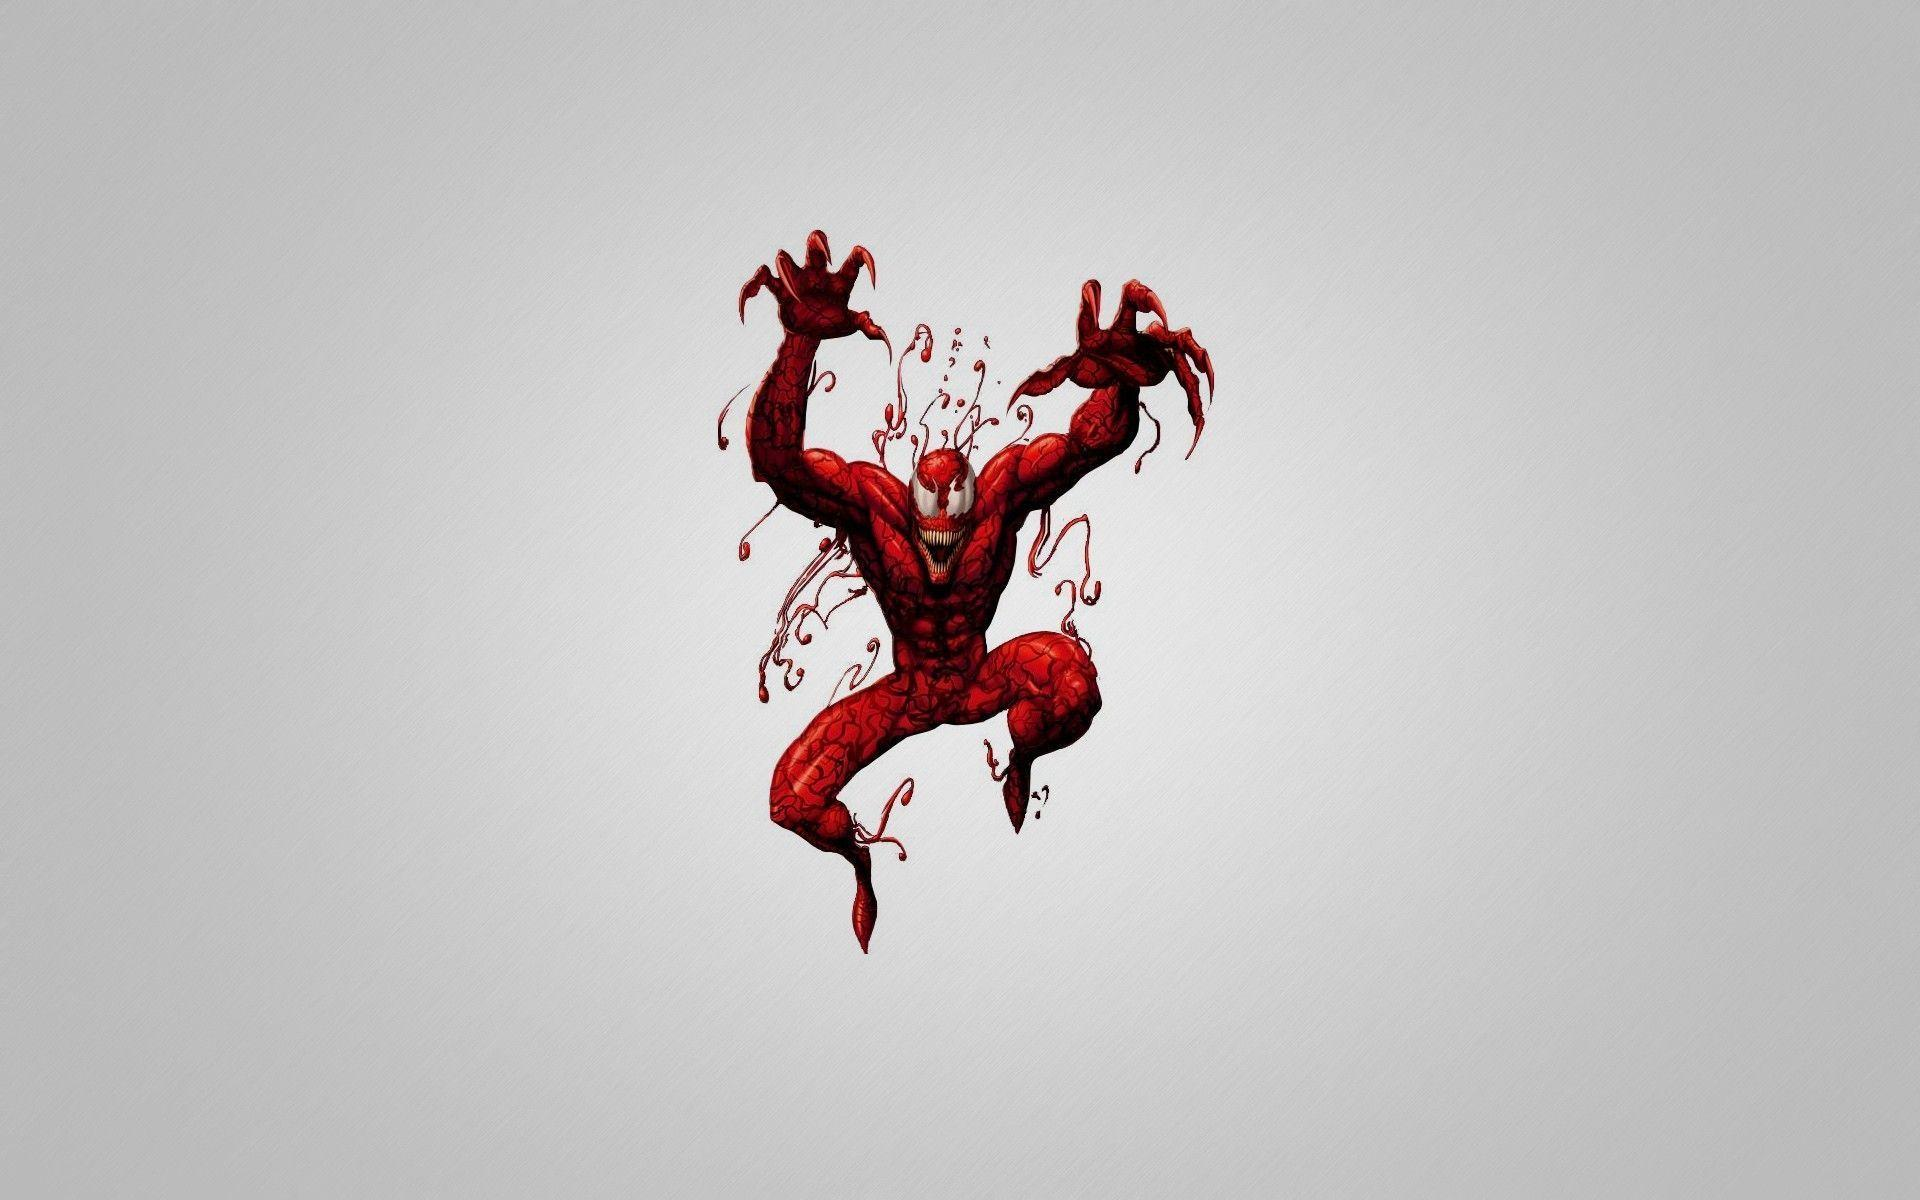 Spiderman Carnage wallpapers